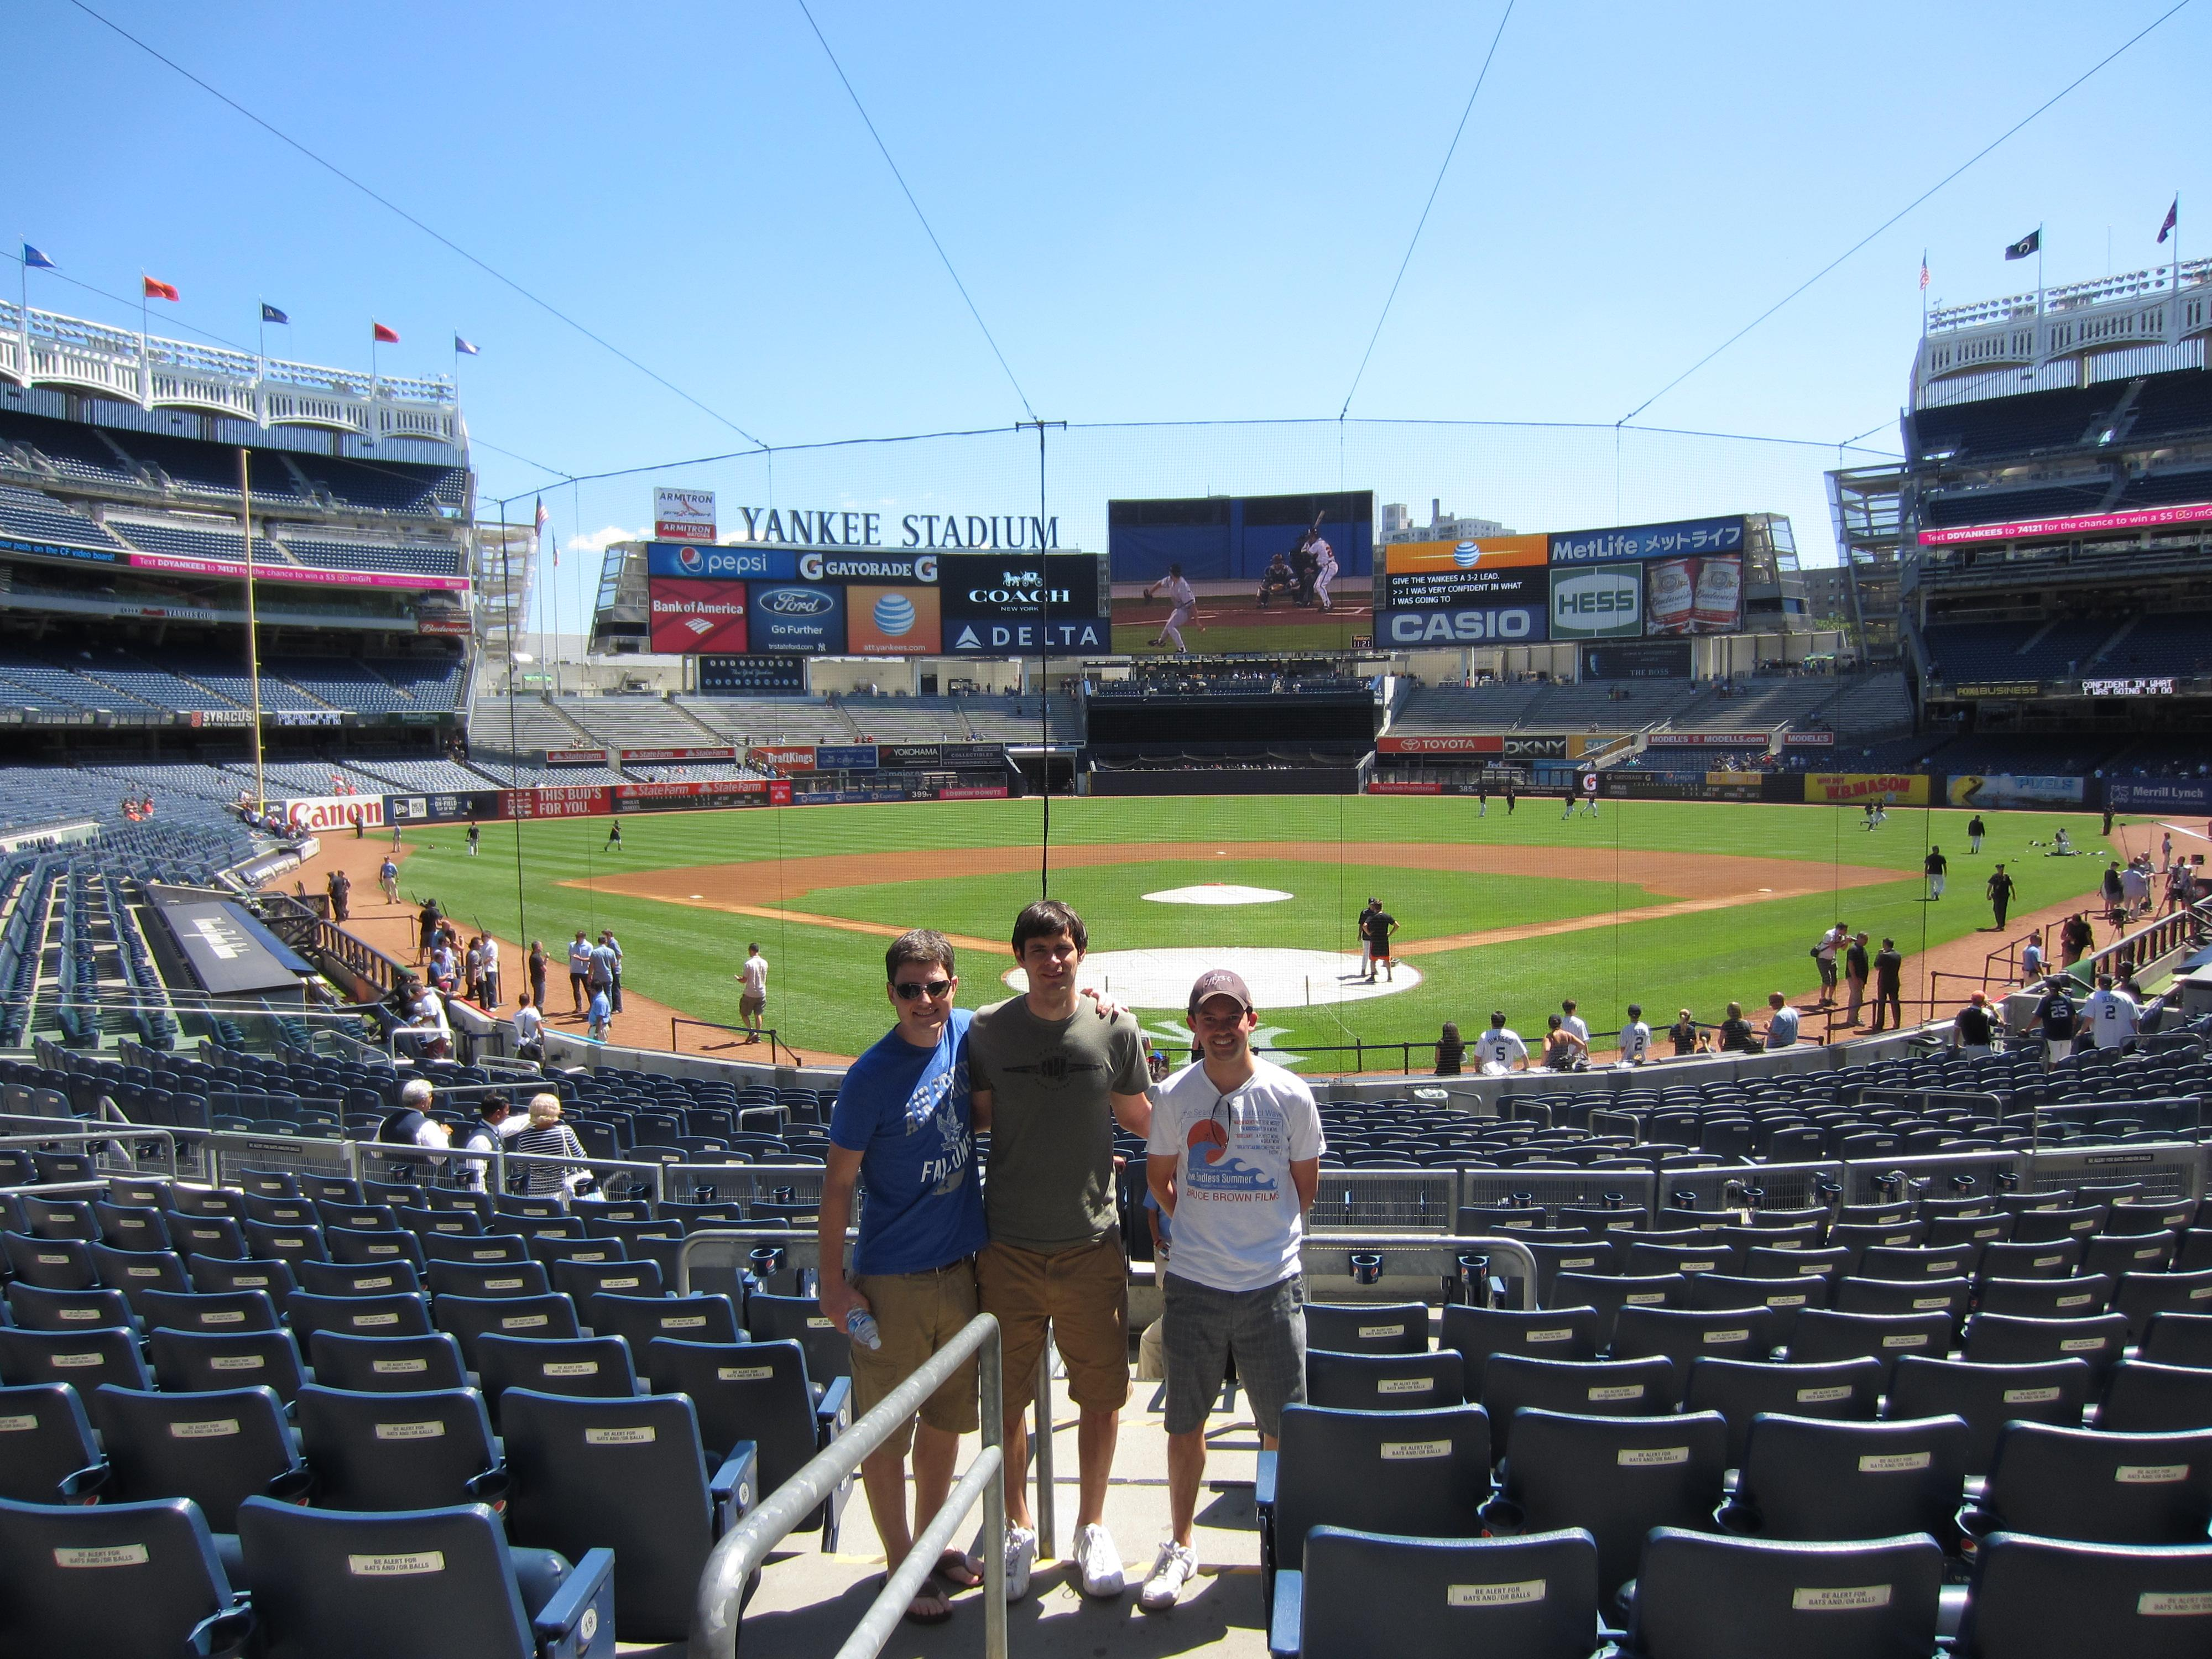 From left, Jason Masteller, Mike Navarro and Ryan Charron at Yankees Stadium in New York.